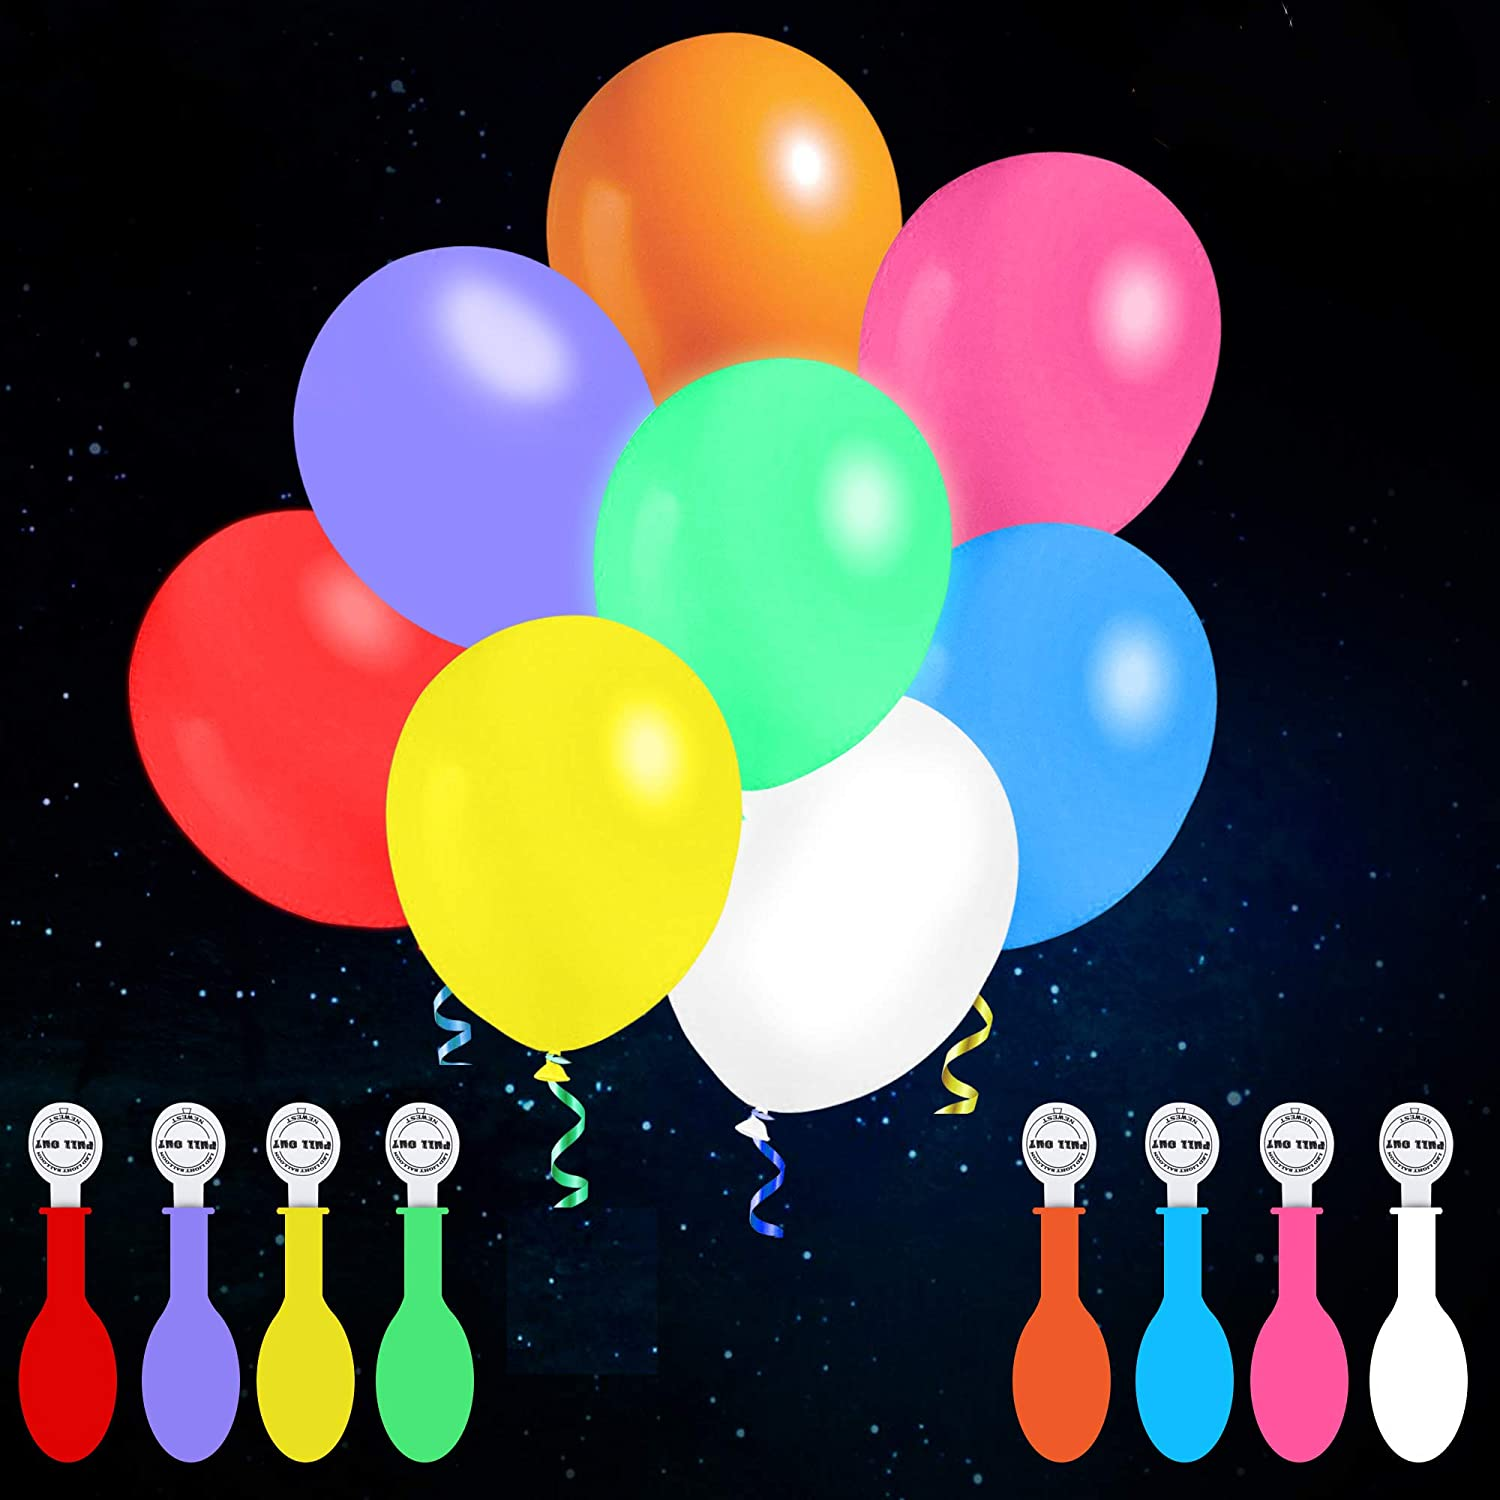 iFUNow 32 Pack LED Balloons Flashing, 8 Colors Light Up Balloons, Lasts 12-24 Hours for Glow in the Dark Party Supplies, Birthday Decorations, Halloween Party: Toys & Games